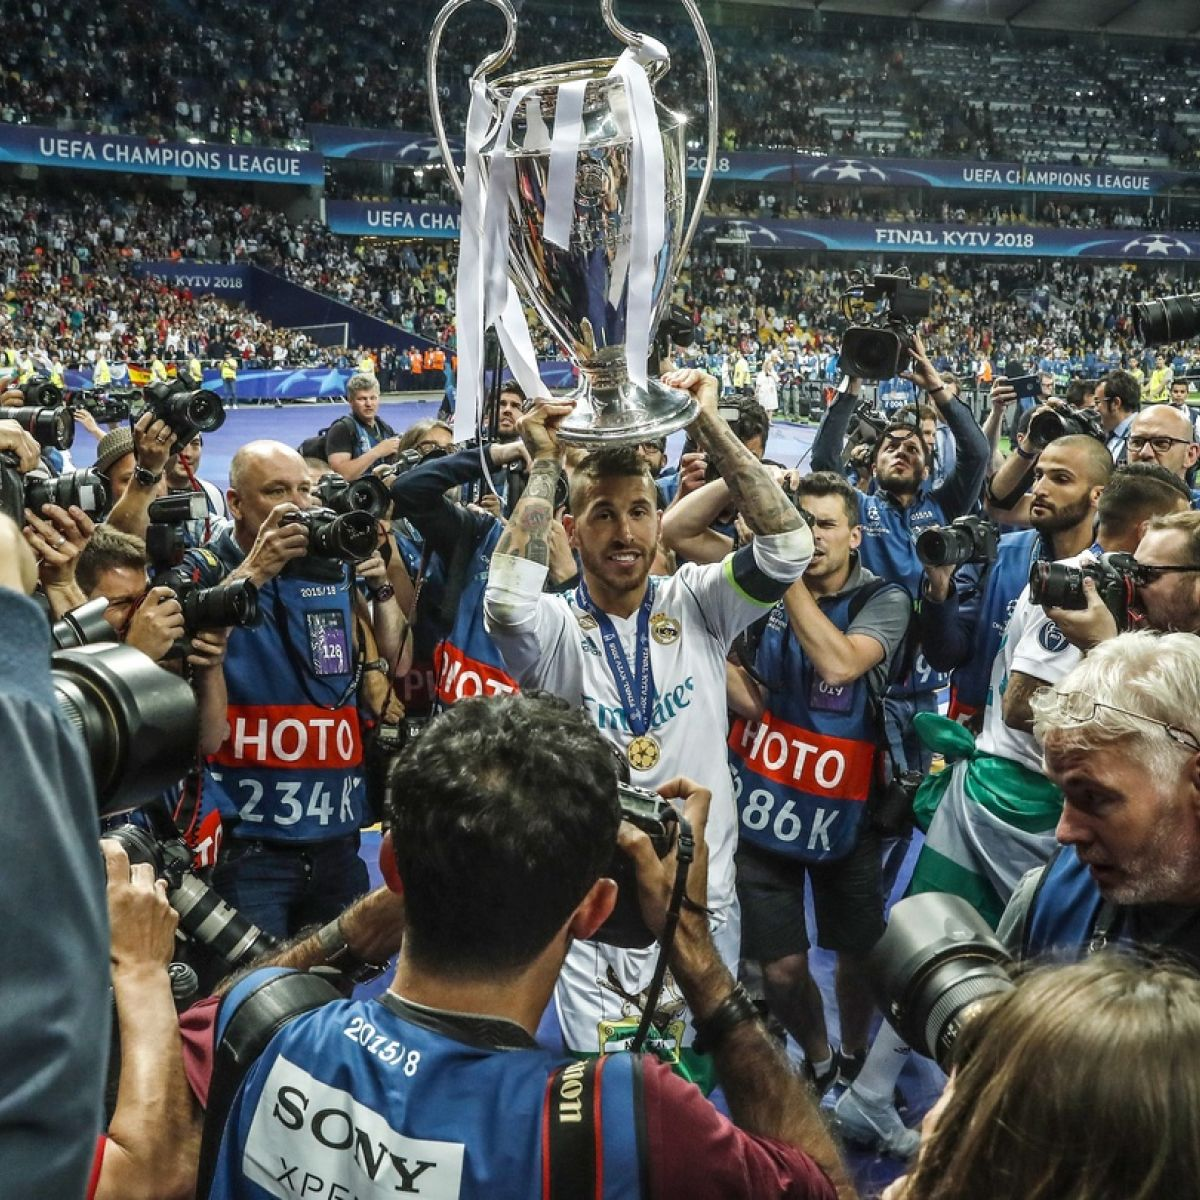 How can I watch Champions League on TV in Ireland?